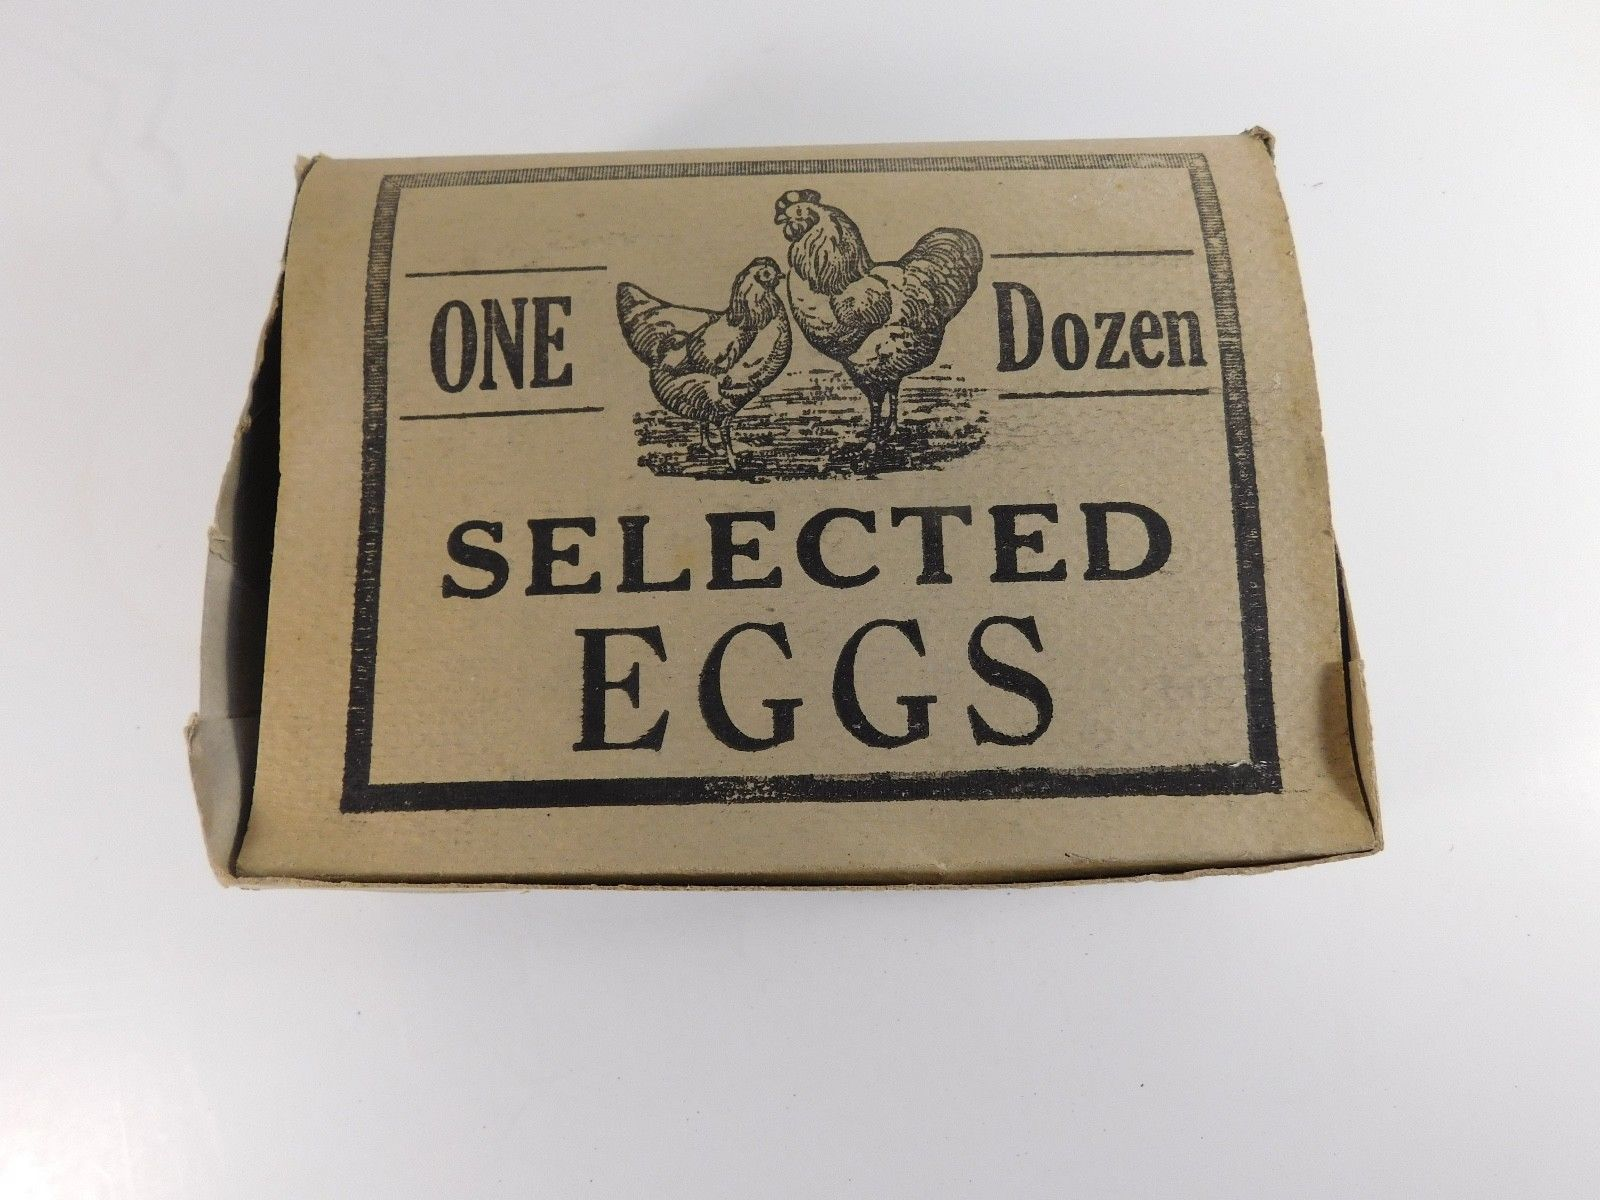 Vintage Cardboard Egg Carton For 1 Dozen Eggs Free Shipping Ebay Egg Carton Carton Egg Free